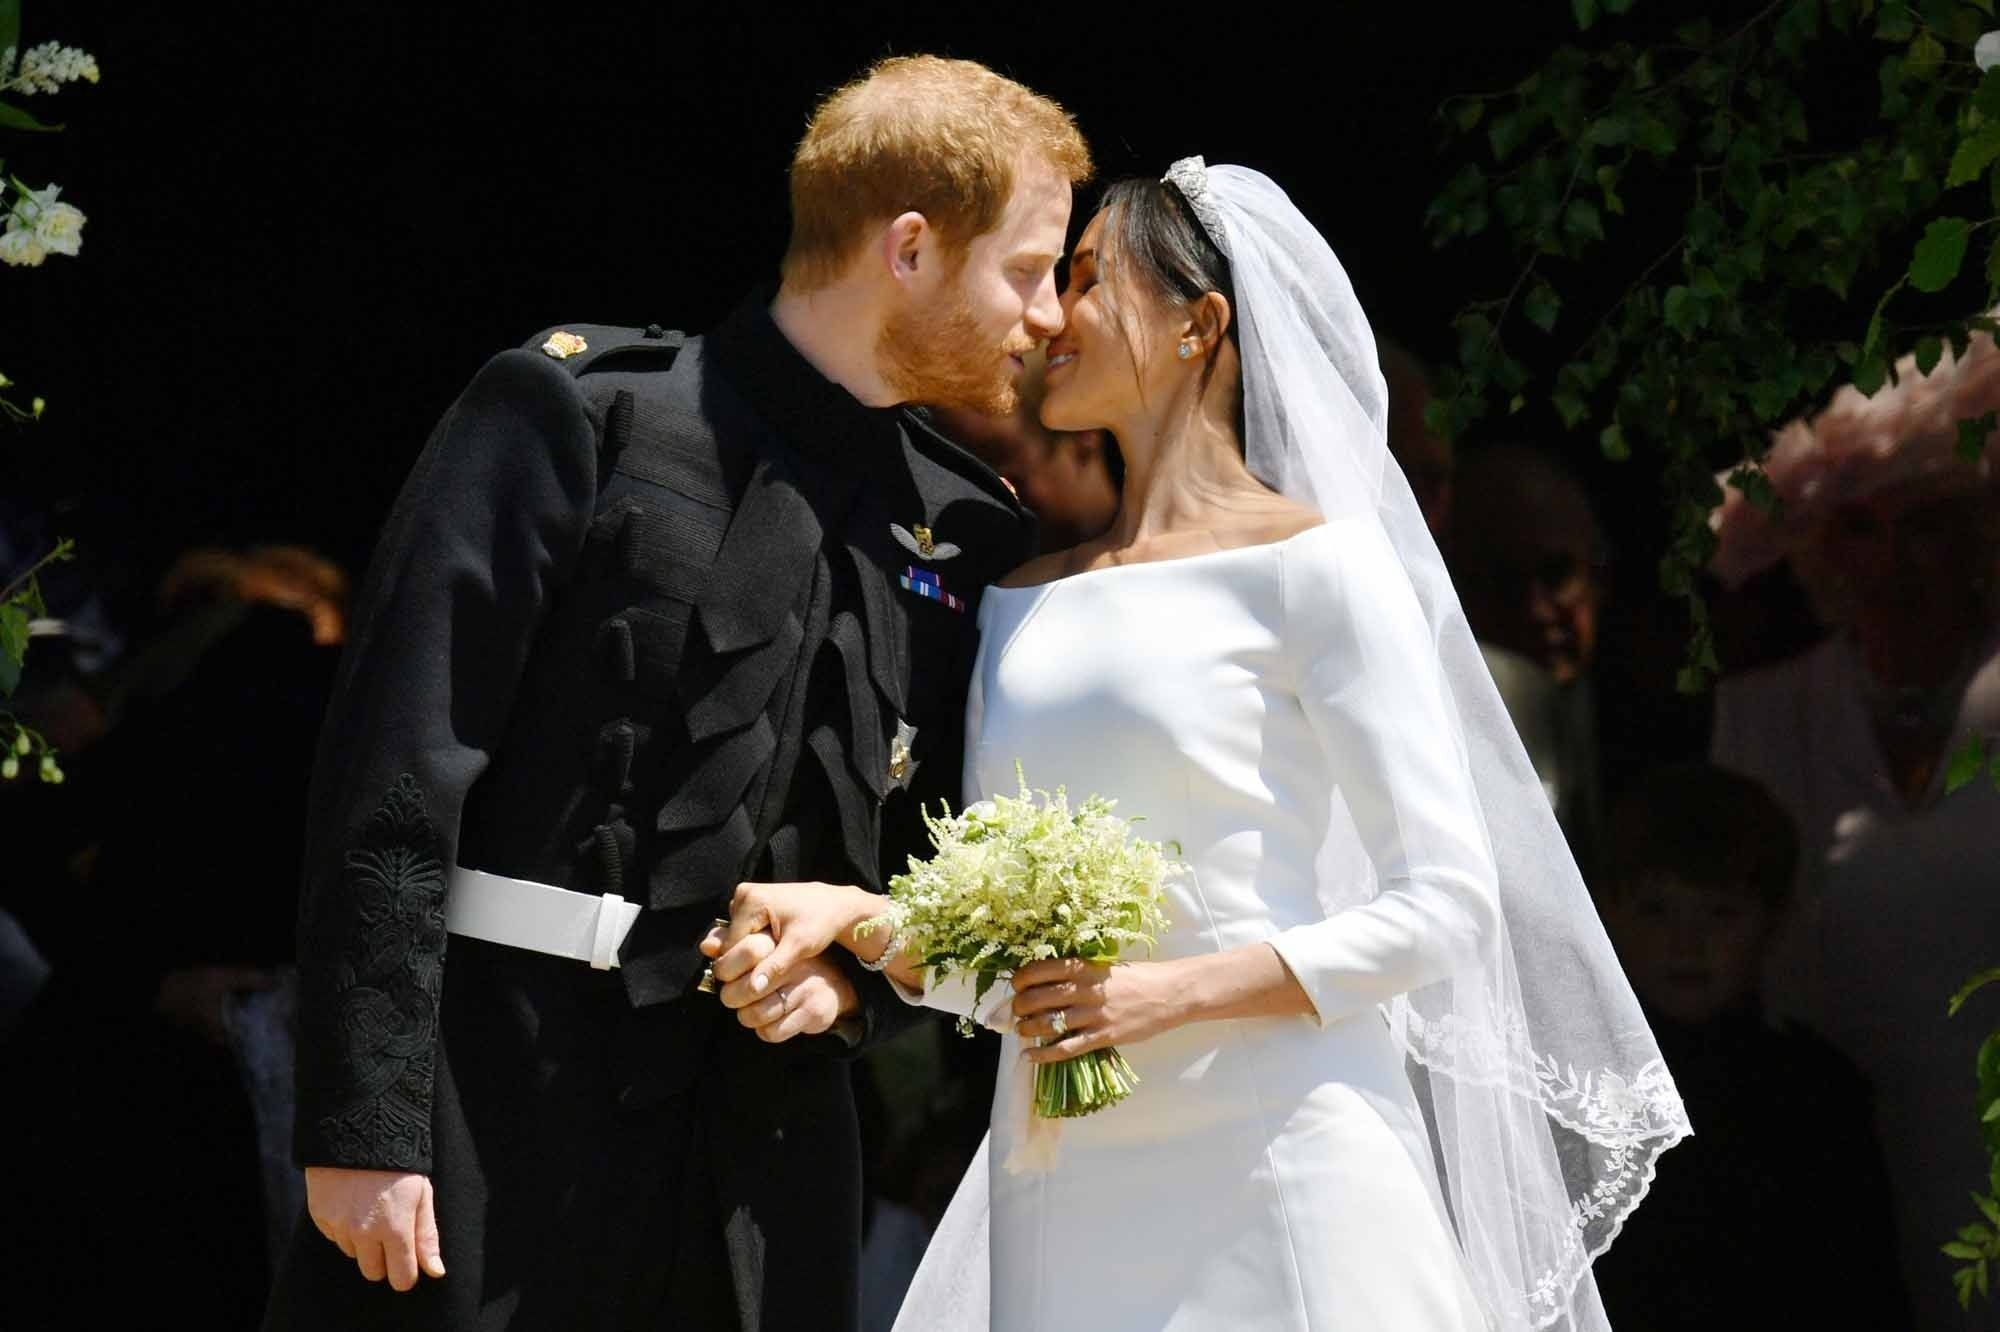 Britain's Prince Harry, Duke of Sussex kisses his wife Meghan, Duchess of Sussex as they leave from the West Door of St George's Chapel, Windsor Castle, in Windsor, on May 19, 2018 after their wedding ceremony. / AFP PHOTO / POOL / Ben Birchall, AFP